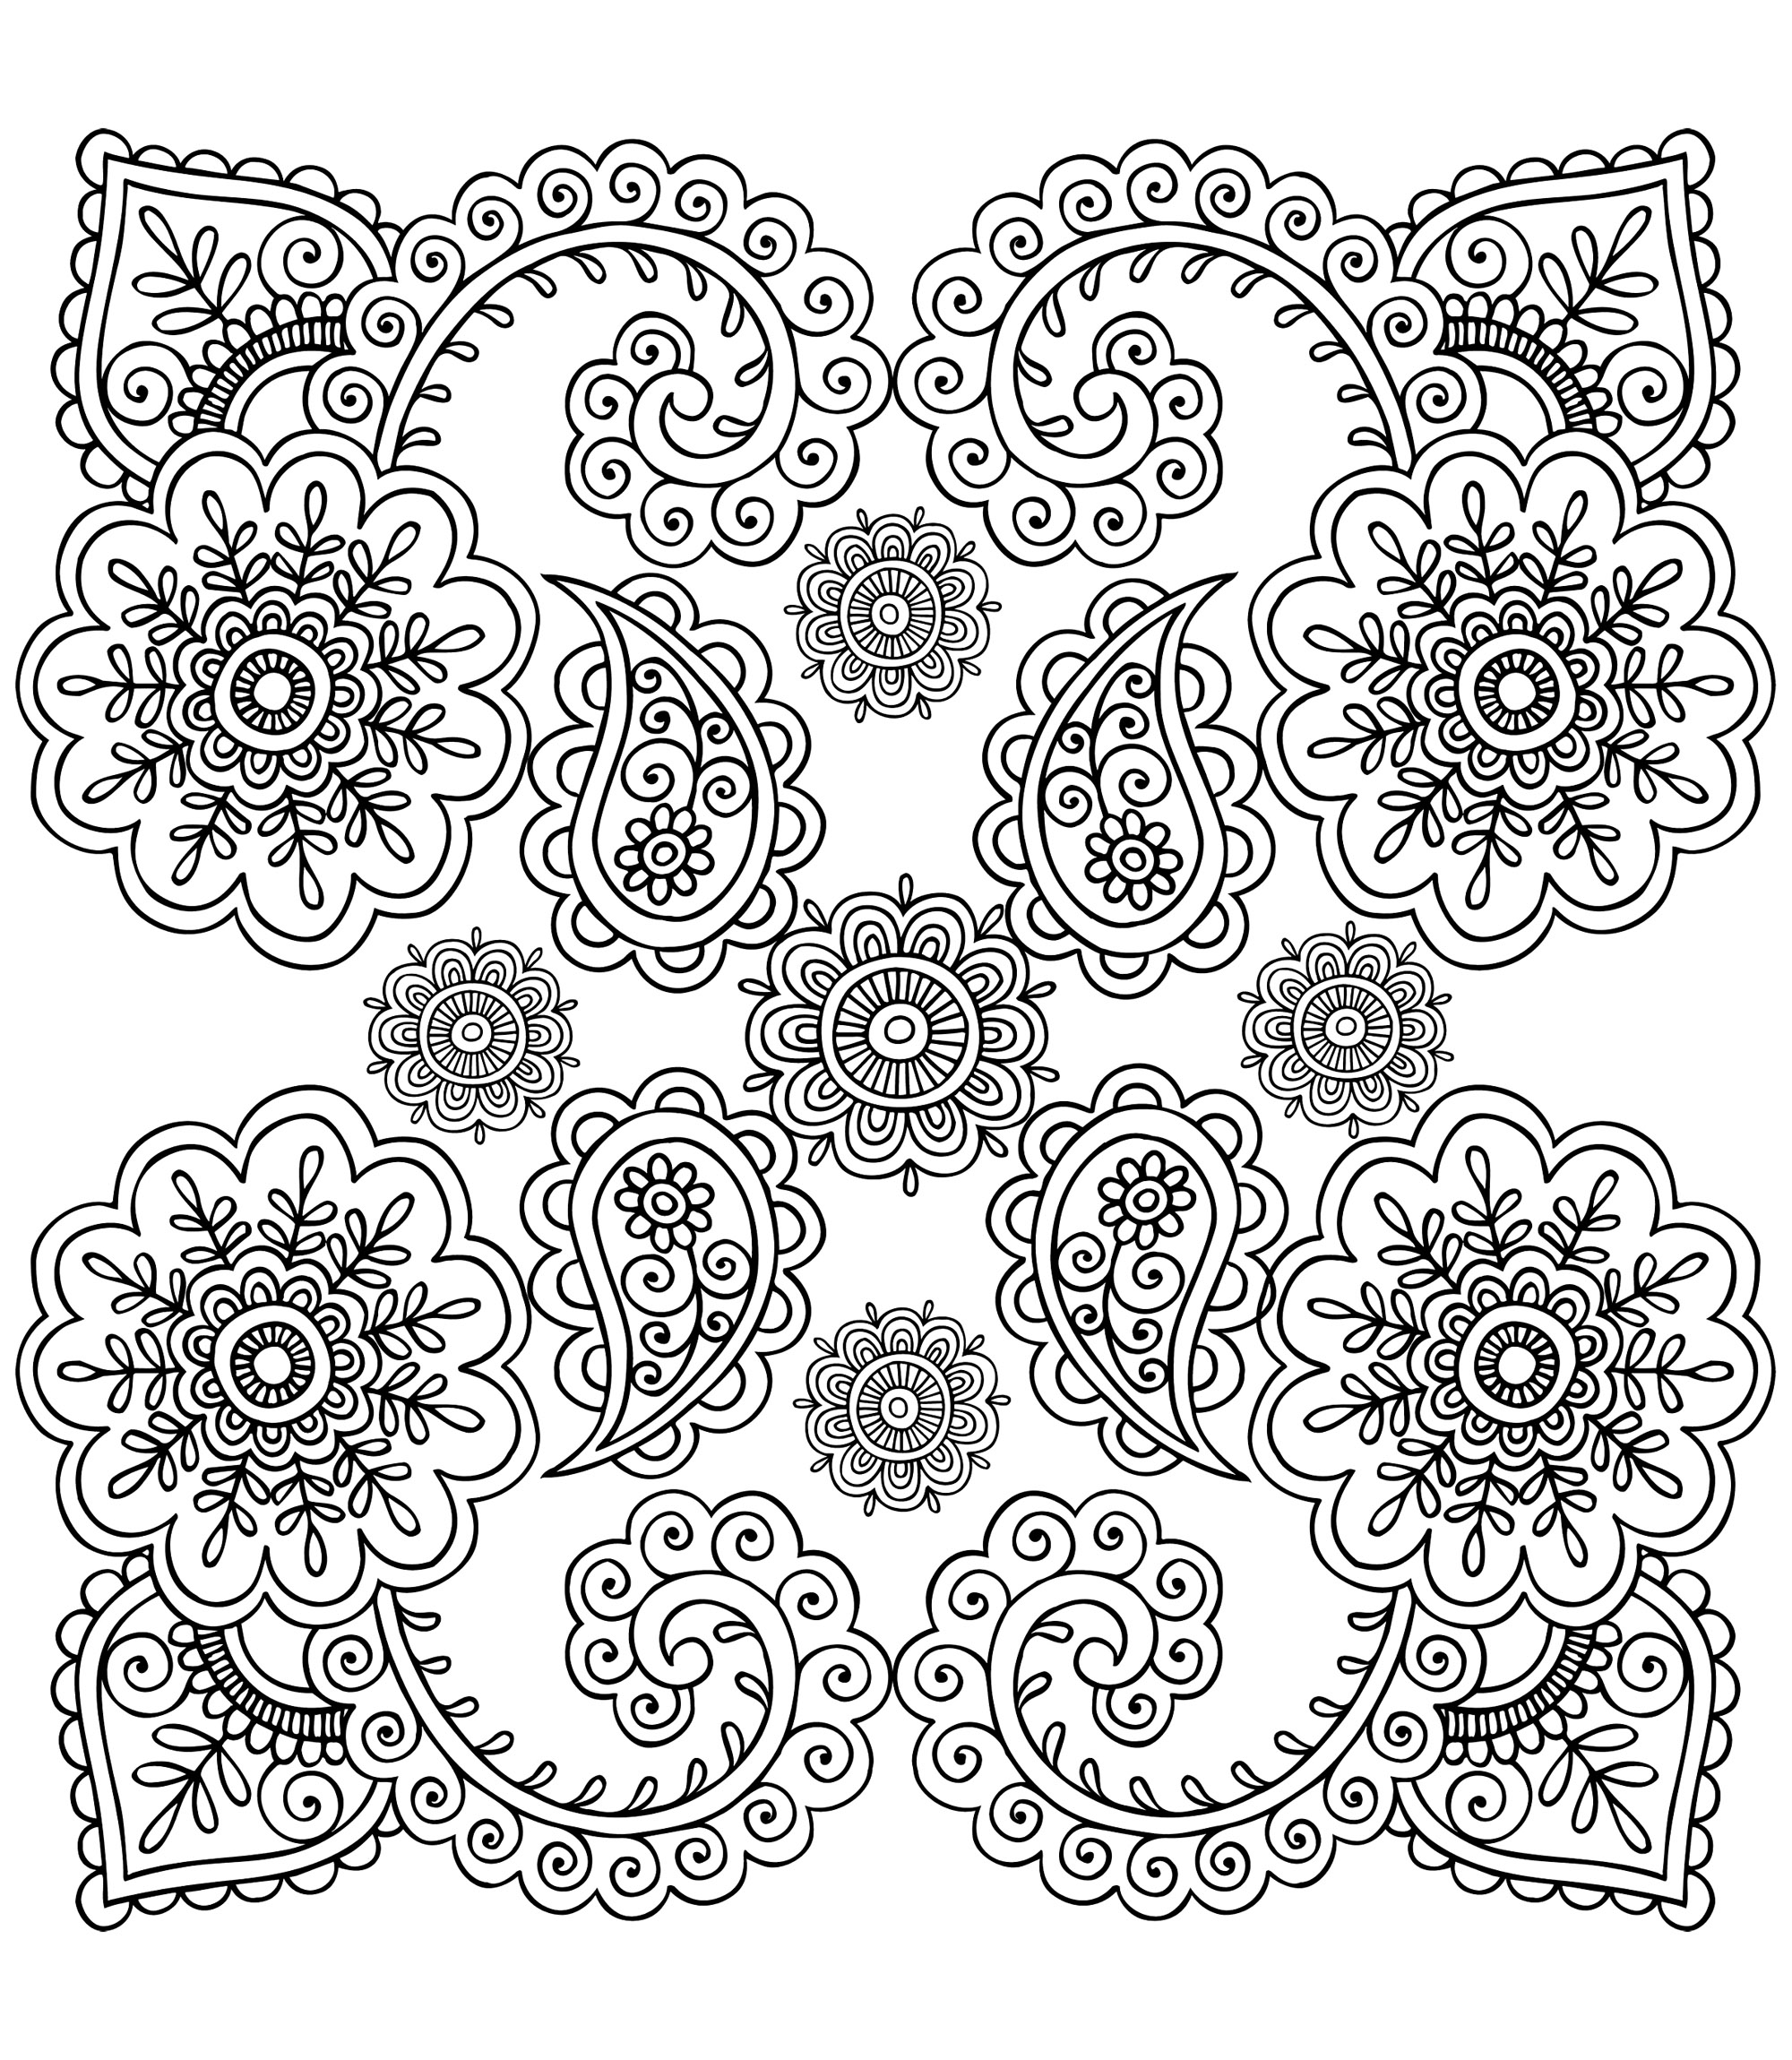 Anxiety Coloring Pages At Getdrawings Com Free For